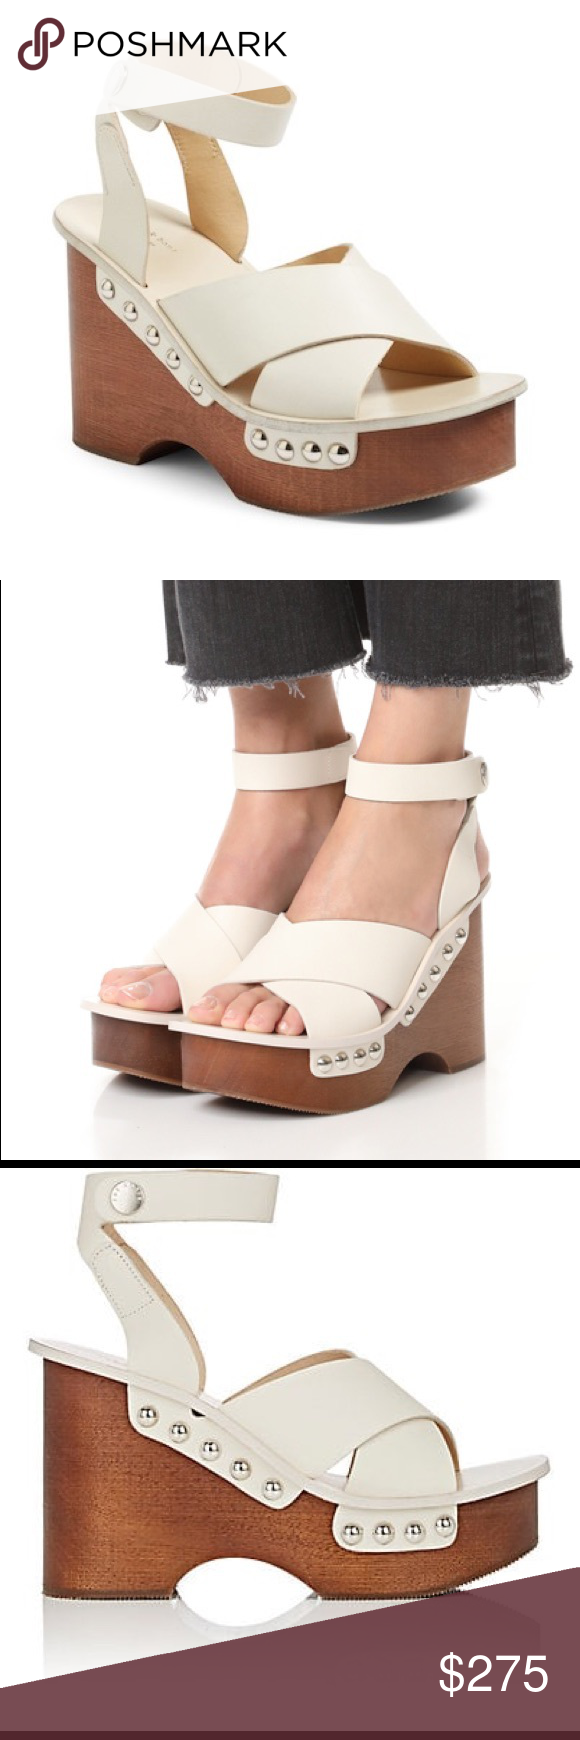 b21193d45ab rag + bone Hester platform sandal Never worn platform sandals from rag +  bone. White leather